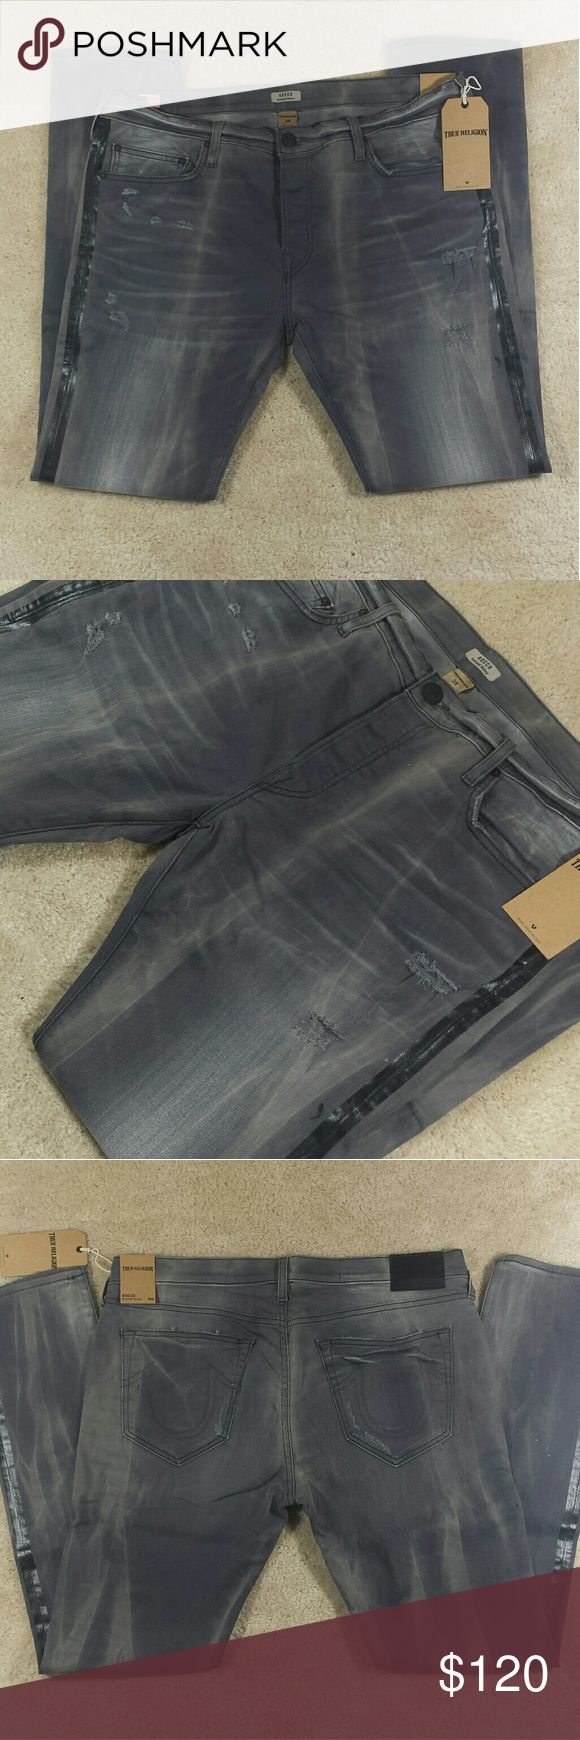 SALE - *NWT* TRUE RELIGION Men's Relaxed Skinny *NWT* TRUE RELIGION Men's Rocco Relaxed Skinny Jeans.  Distressed with black stripe on the side of the leg.  Color: BXJM RCKLS Size: 38 x 34 Fit: Relaxed Skinny Enclosure: Button Fly Retail: $298  Made in the USA True Religion Jeans Skinny